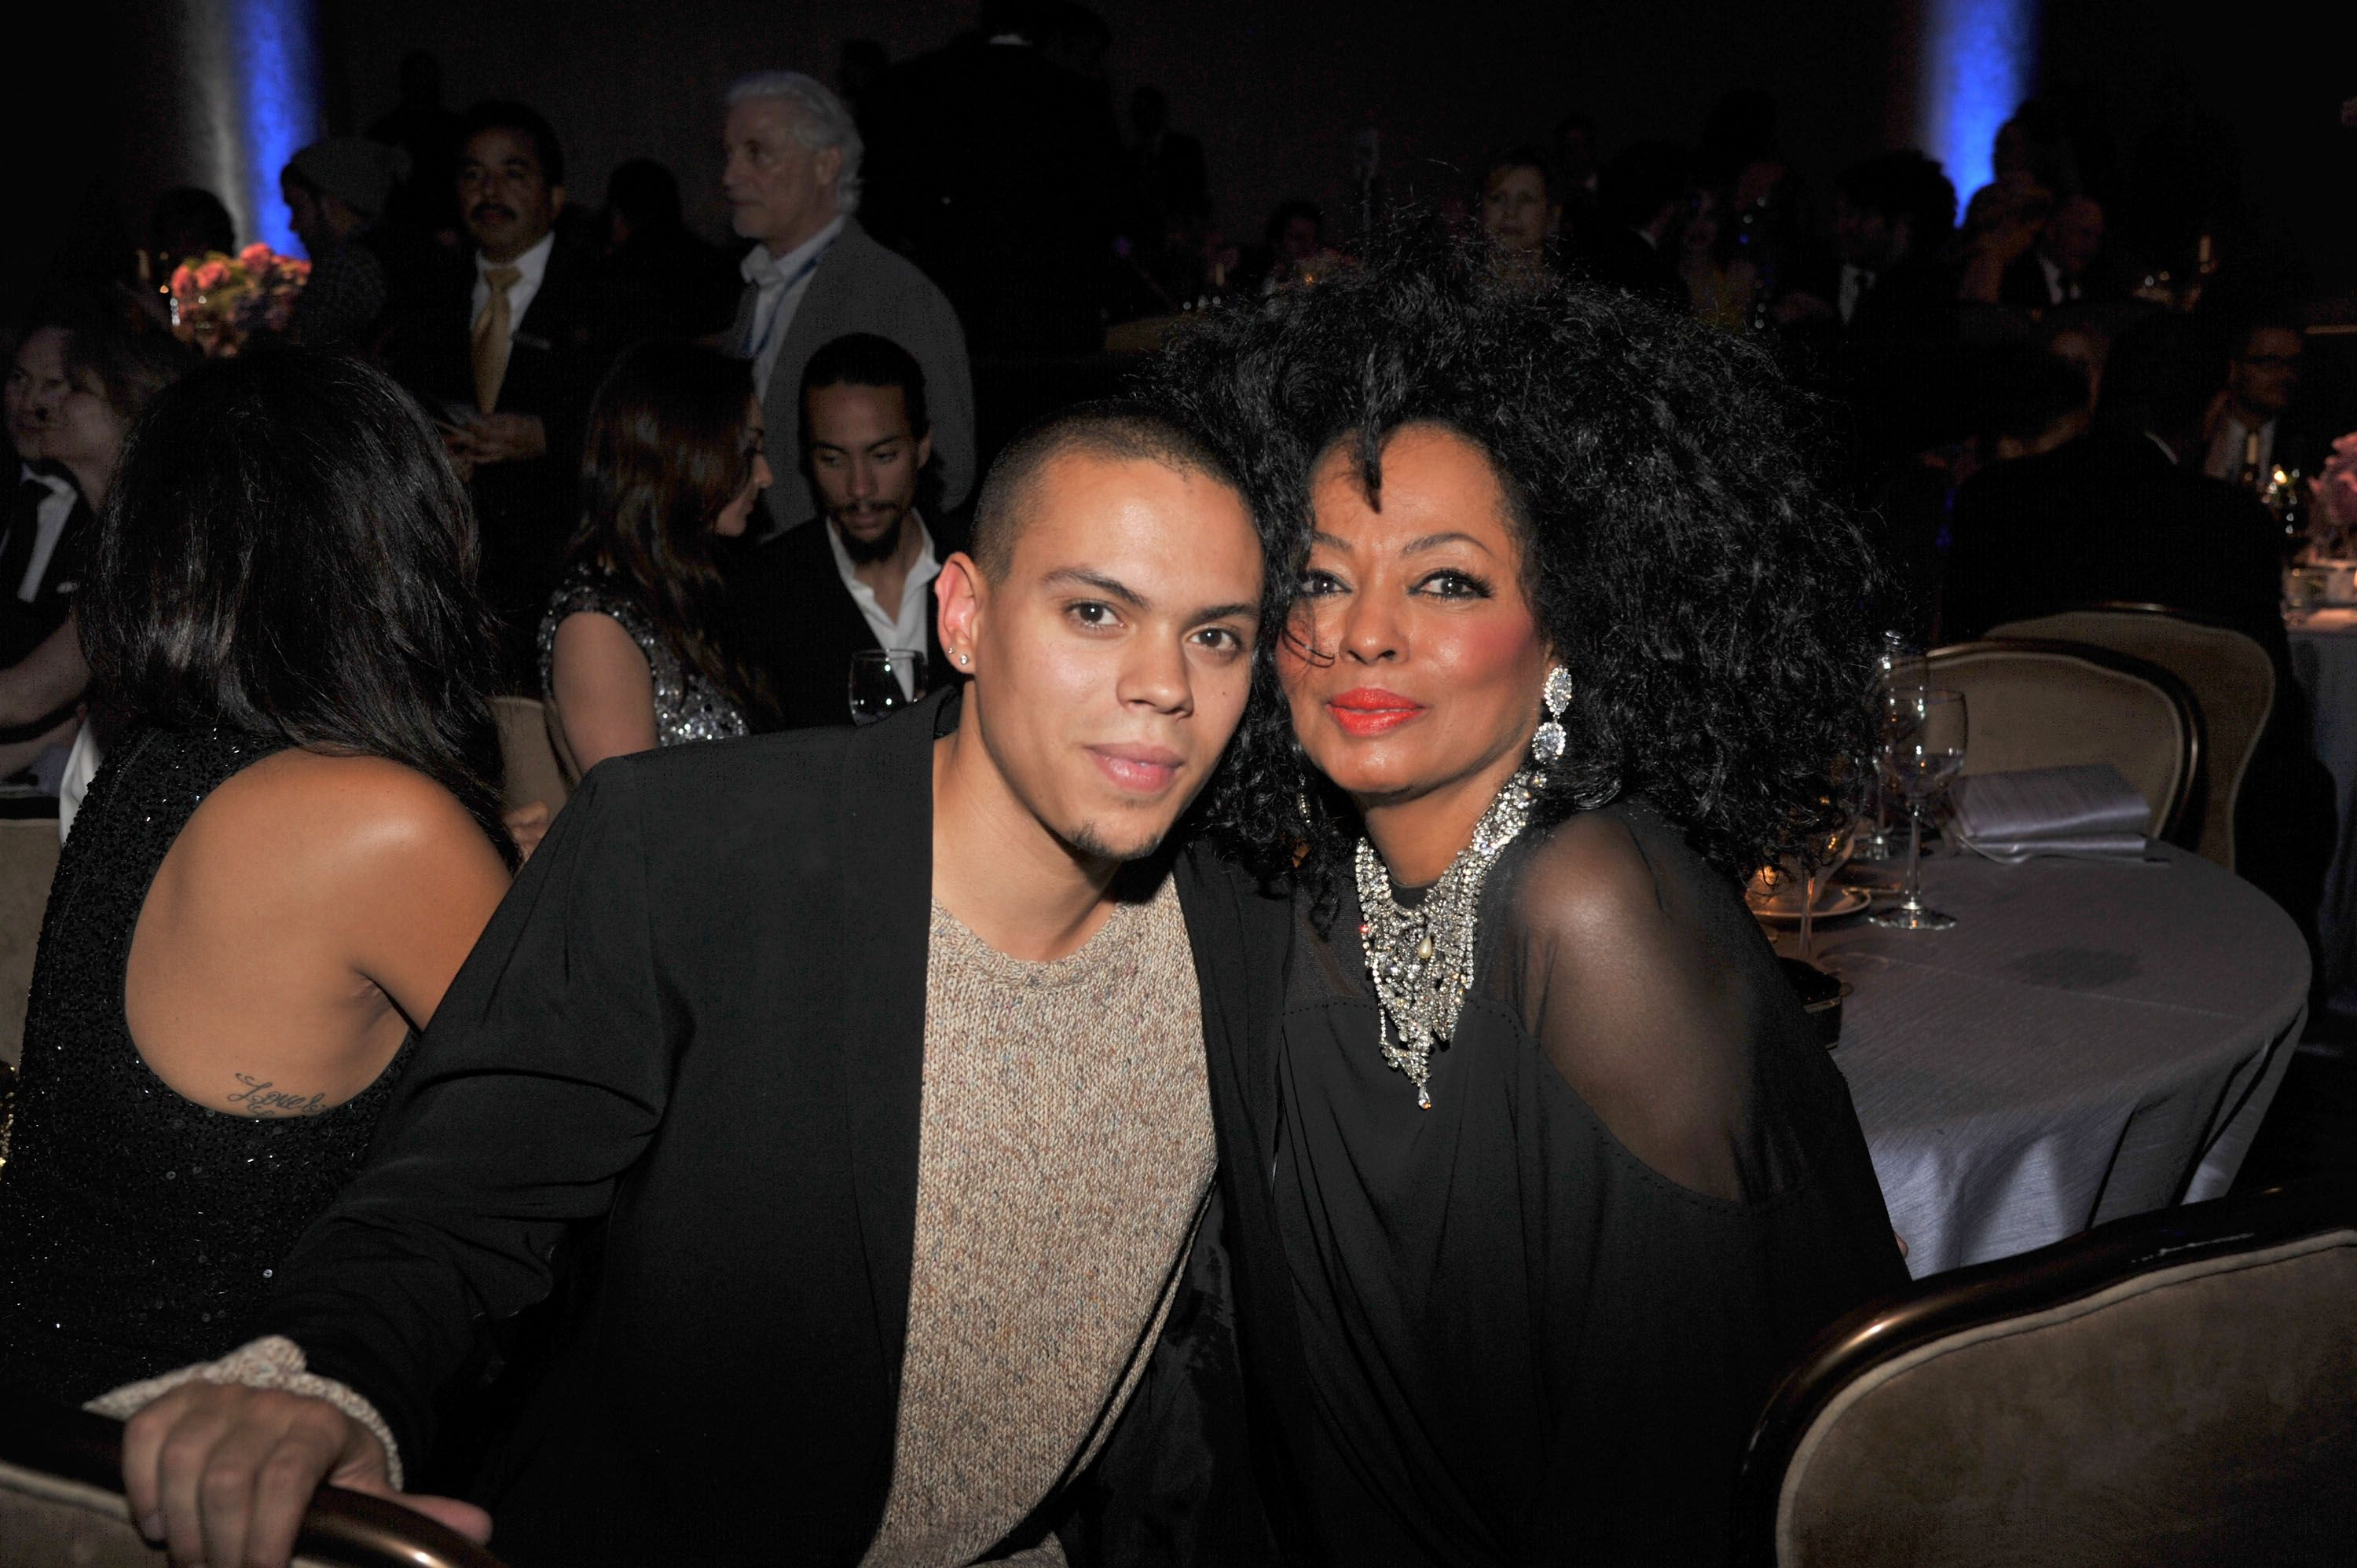 Evan Ross and Diana Ross during the Clive Davis and The Recording Academy's 2012 Pre-Grammy Gala and Salute to Industry Icons Honoring Richard Branson at The Beverly Hilton on February 11, 2012 in Beverly Hills, California. | Source: Getty Image